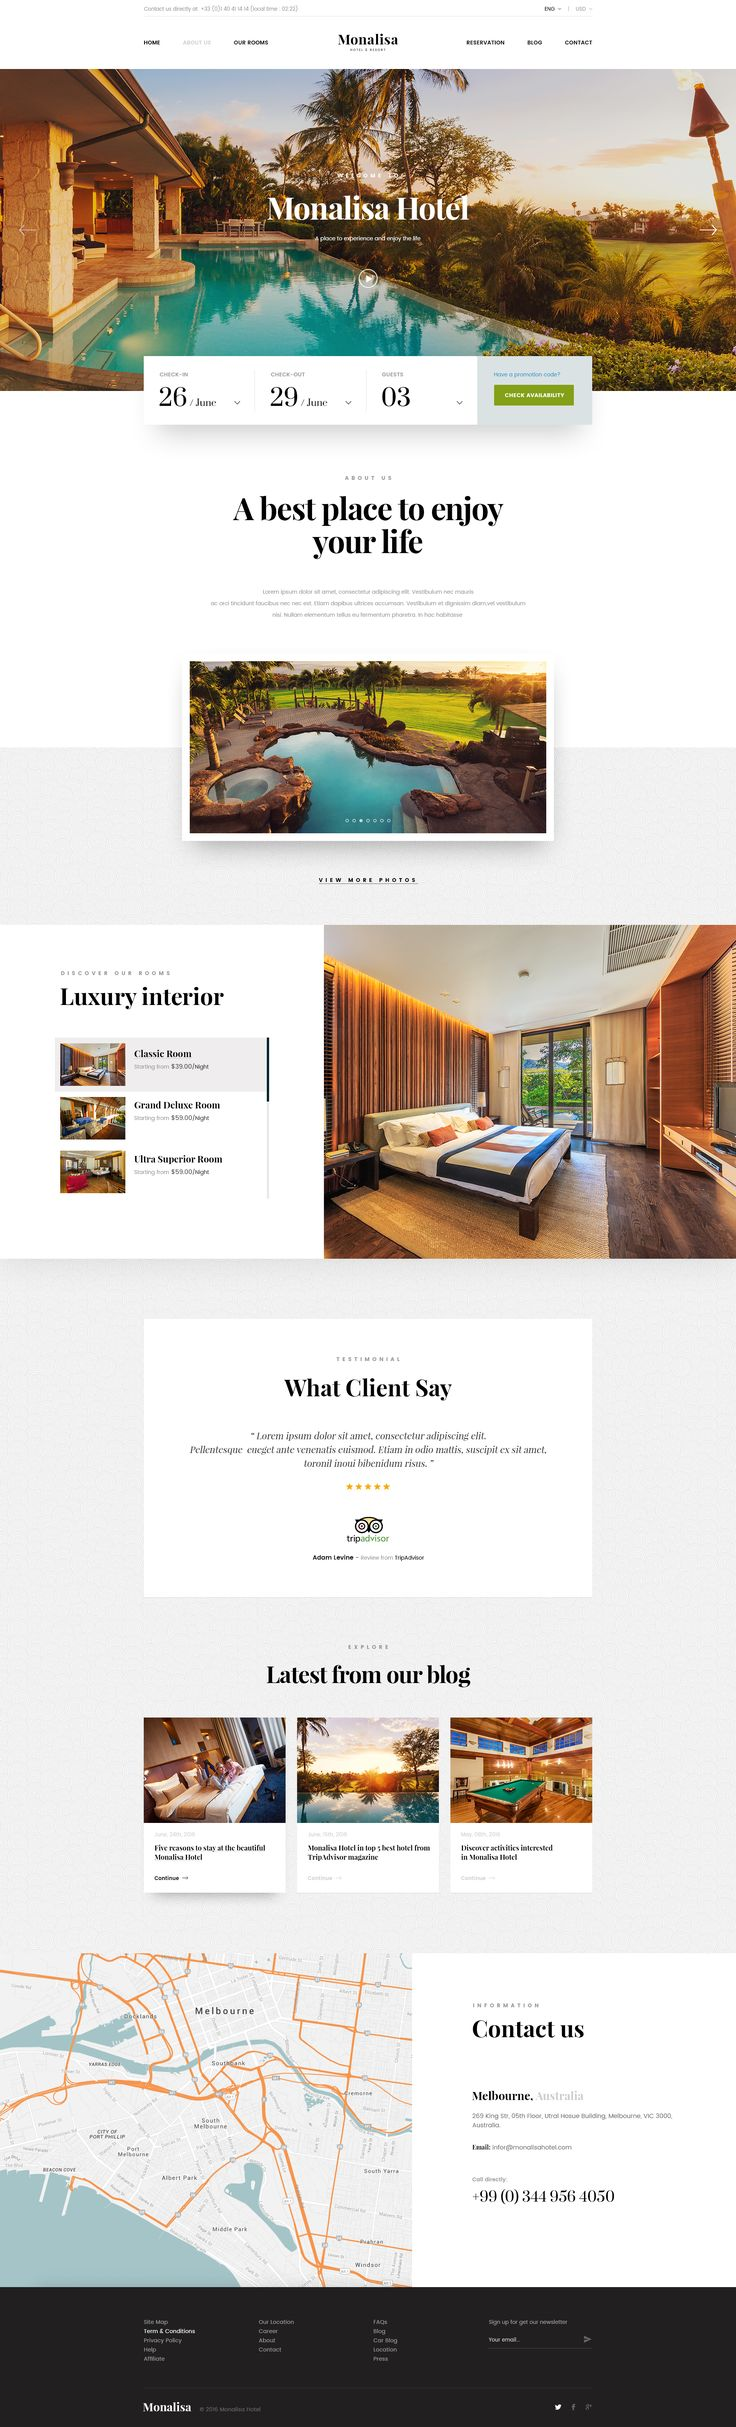 home web design. Dribbble  home jpg by C Knightz Art Best 25 Hotel website ideas on Pinterest design